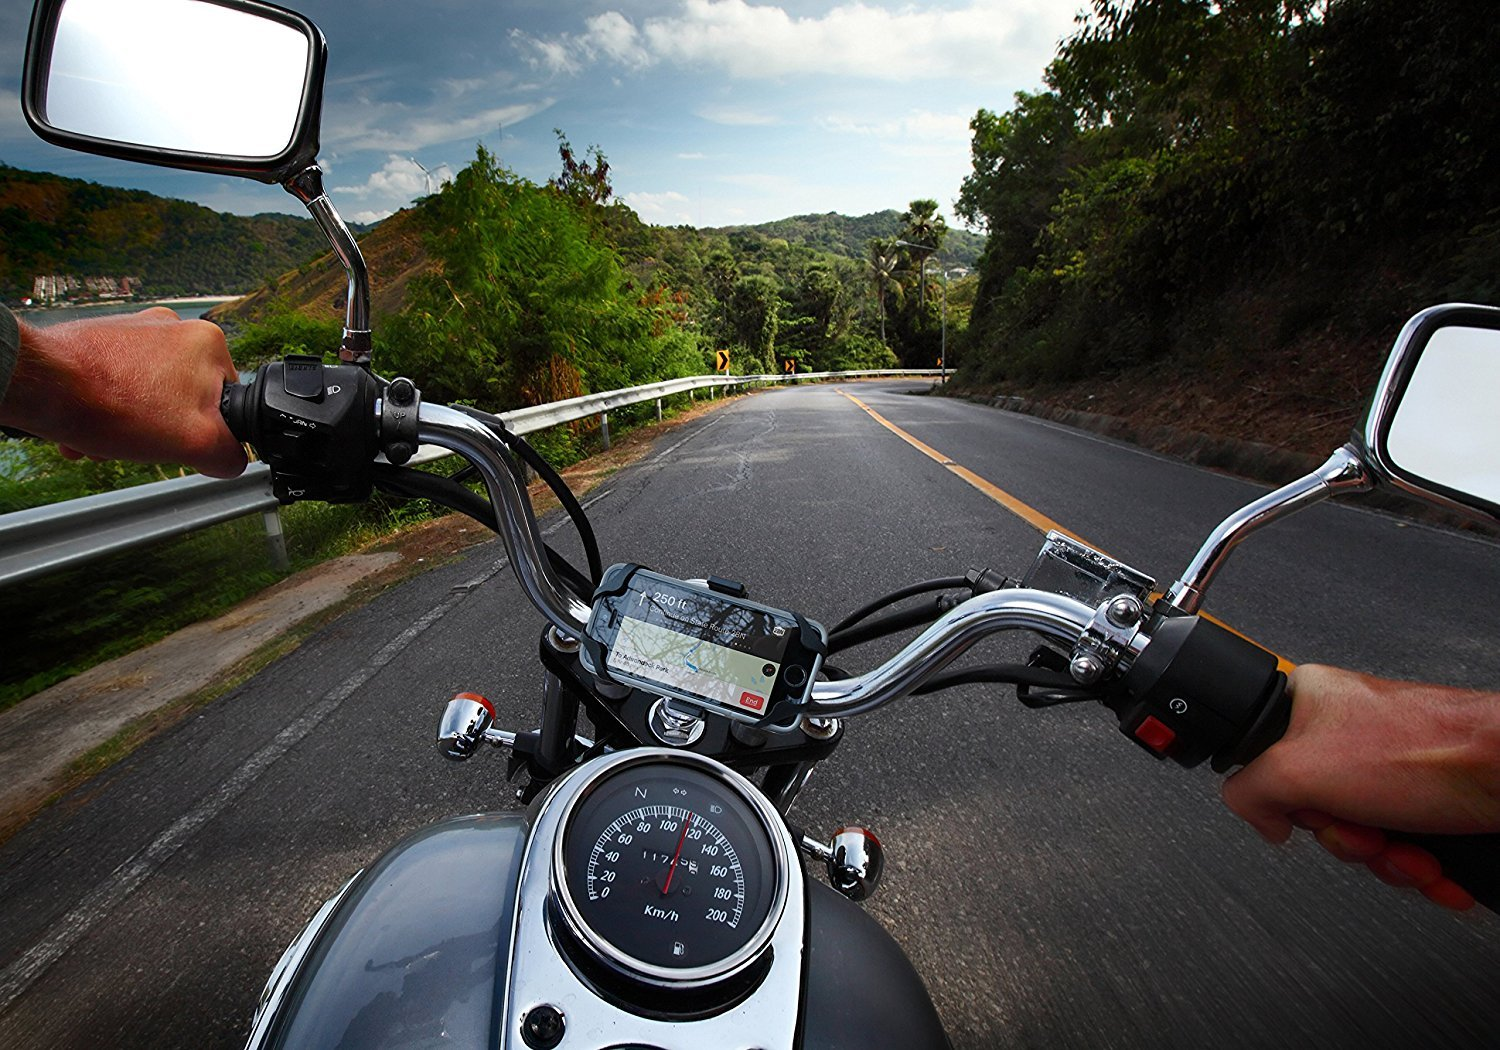 The 5 Best Motorcycle Phone Mounts - [2019 Reviews